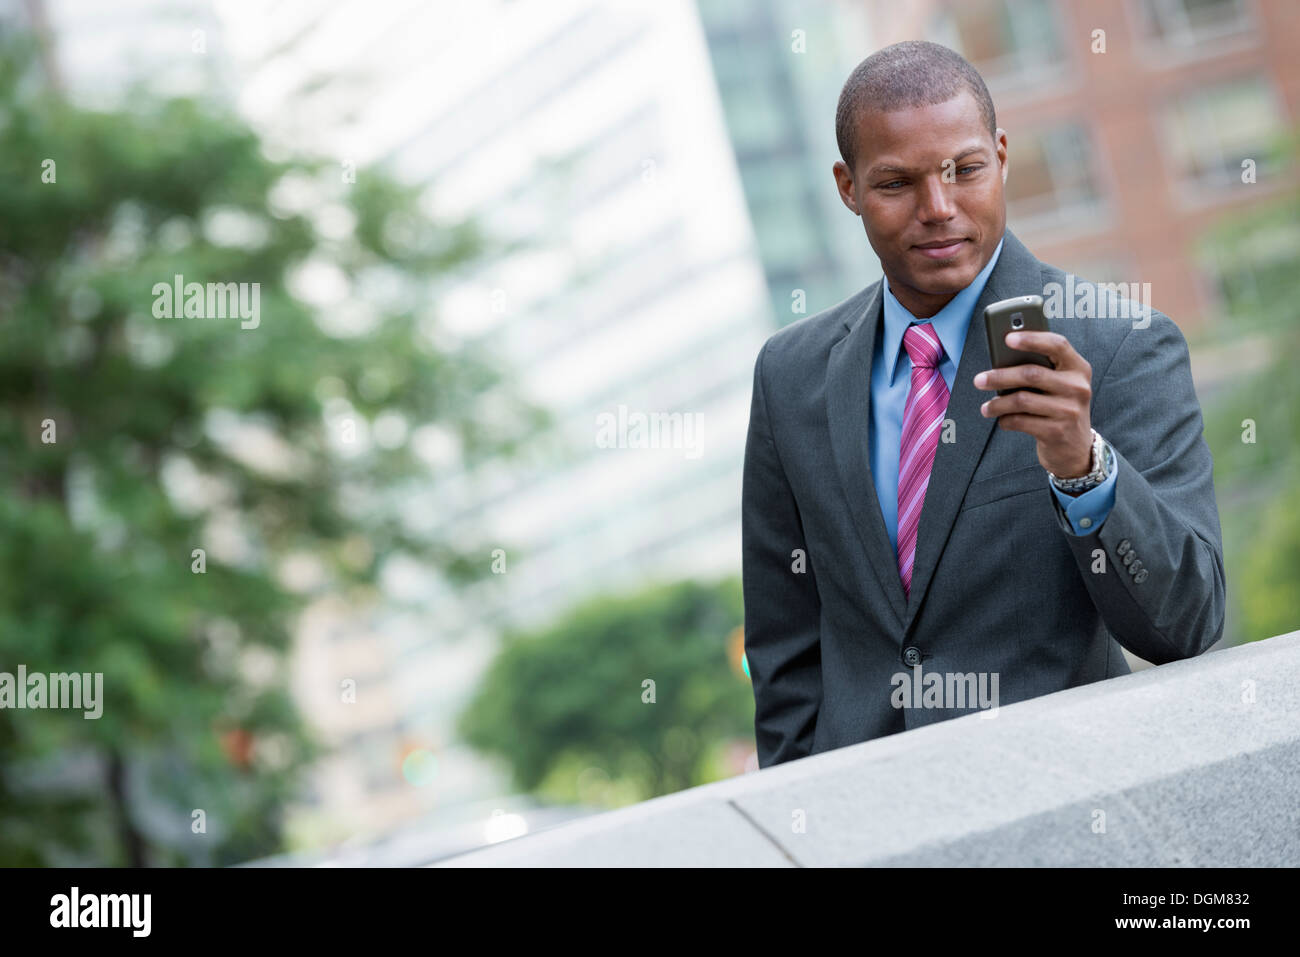 A young man in a business suit with a blue shirt and red tie. On a New York city street. Using a smart phone. - Stock Image